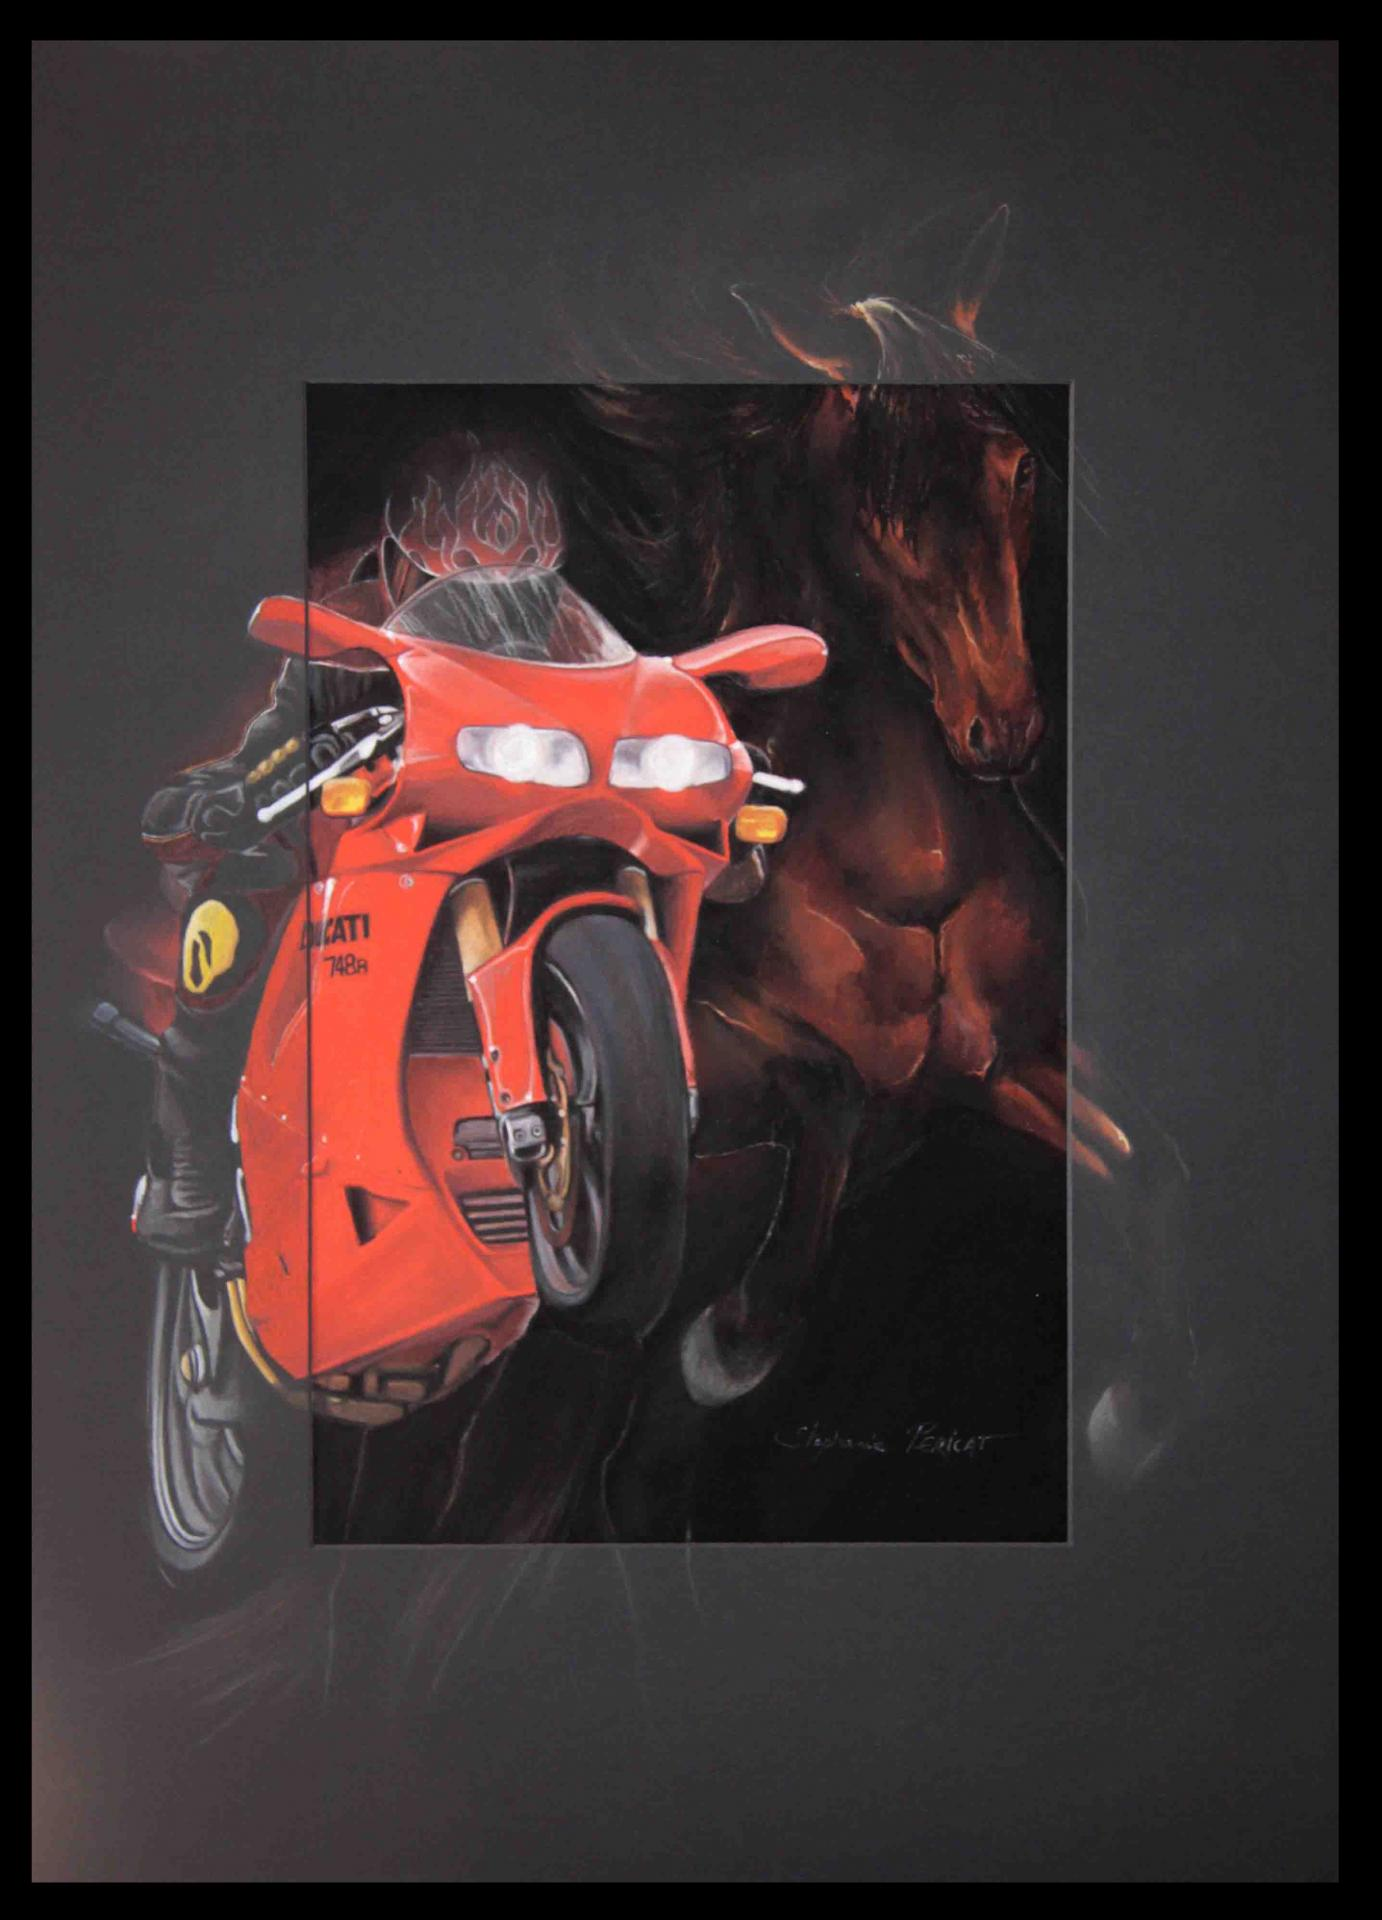 PASSIONS (ducati 748R et cheval - bike and horse) -  50x70cm